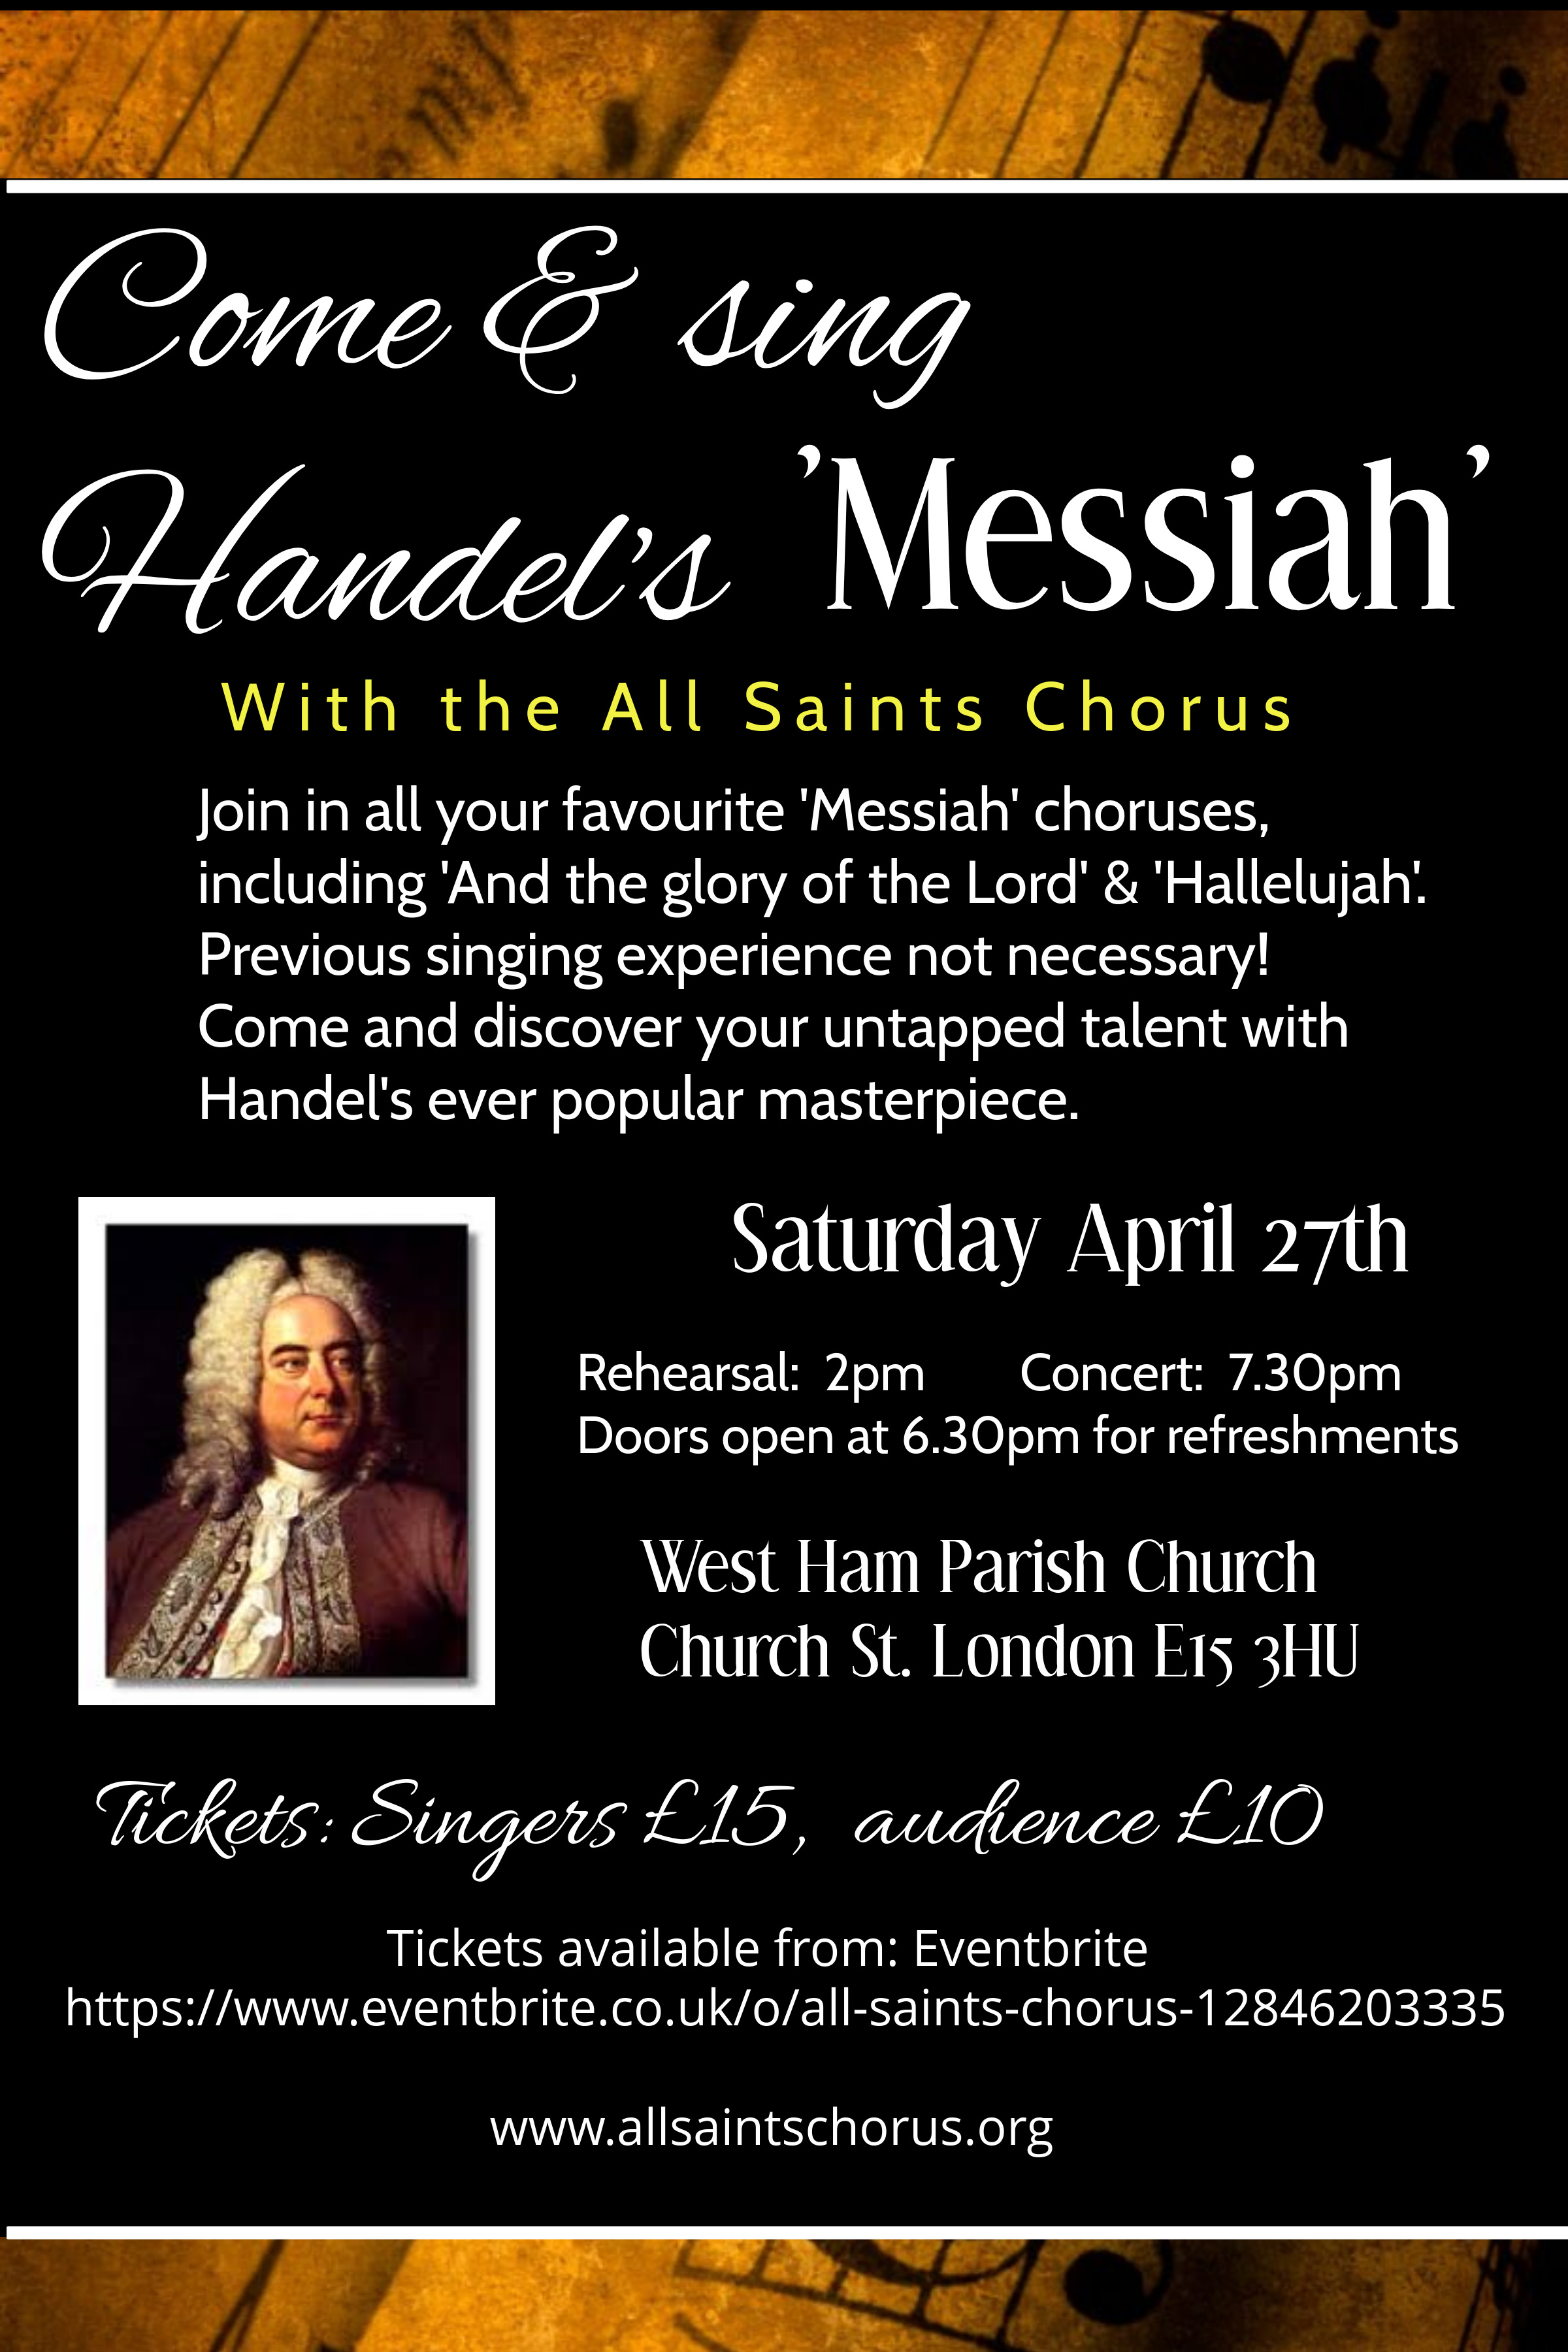 https://www.eventbrite.co.uk/e/come-sing-handels-messiah-tickets-56228496948